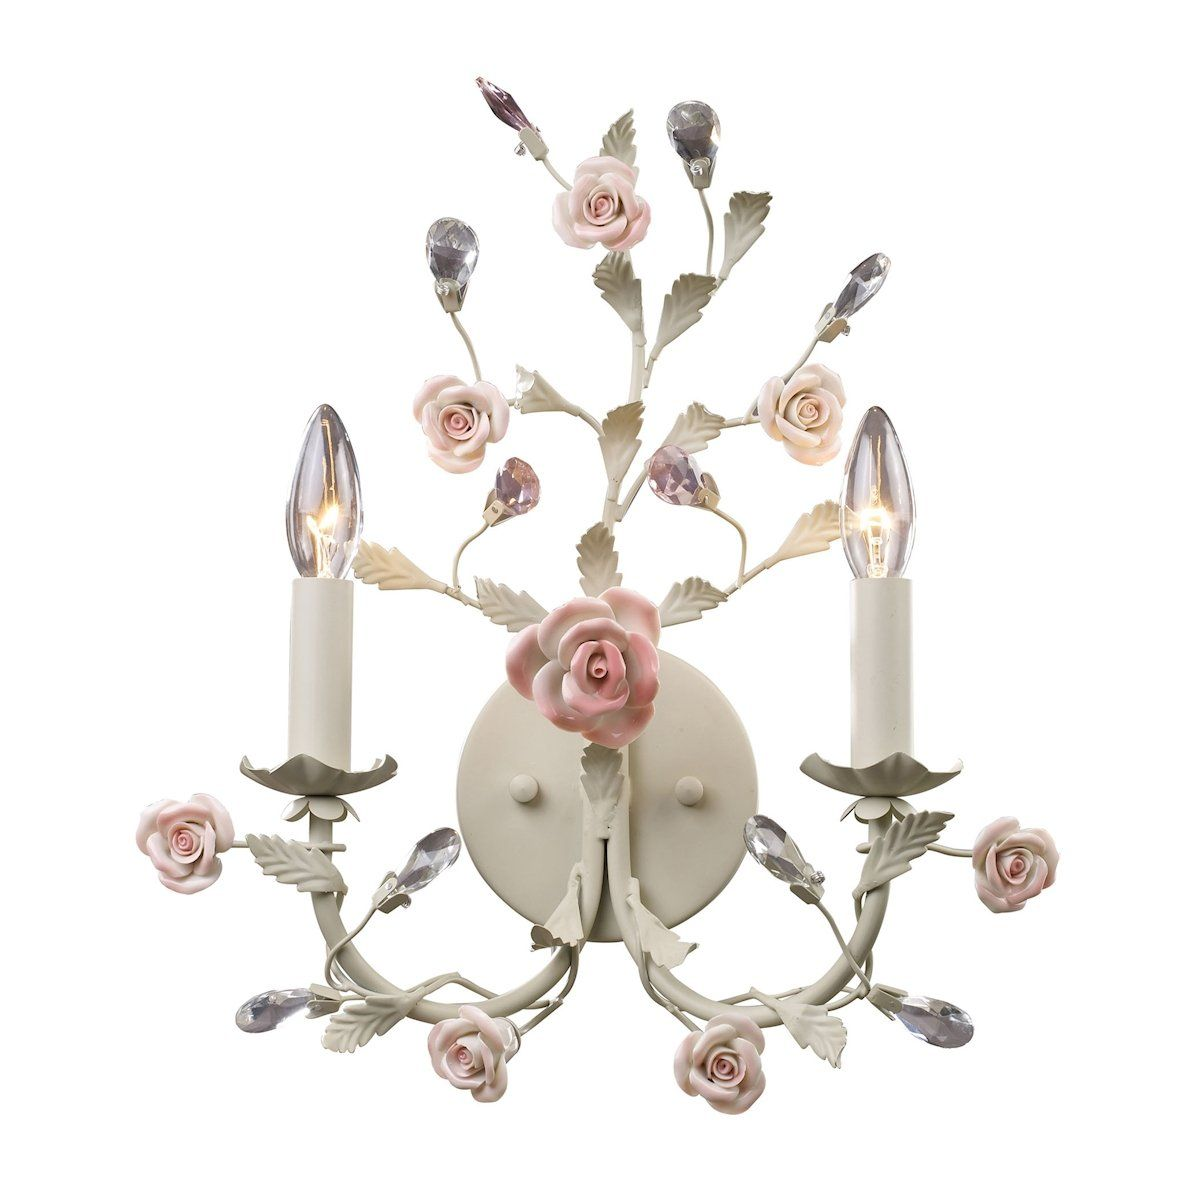 Heritage 2 Light Wall Sconce In Cream With Pink Porcelain Accents Wall Sconce Elk Lighting